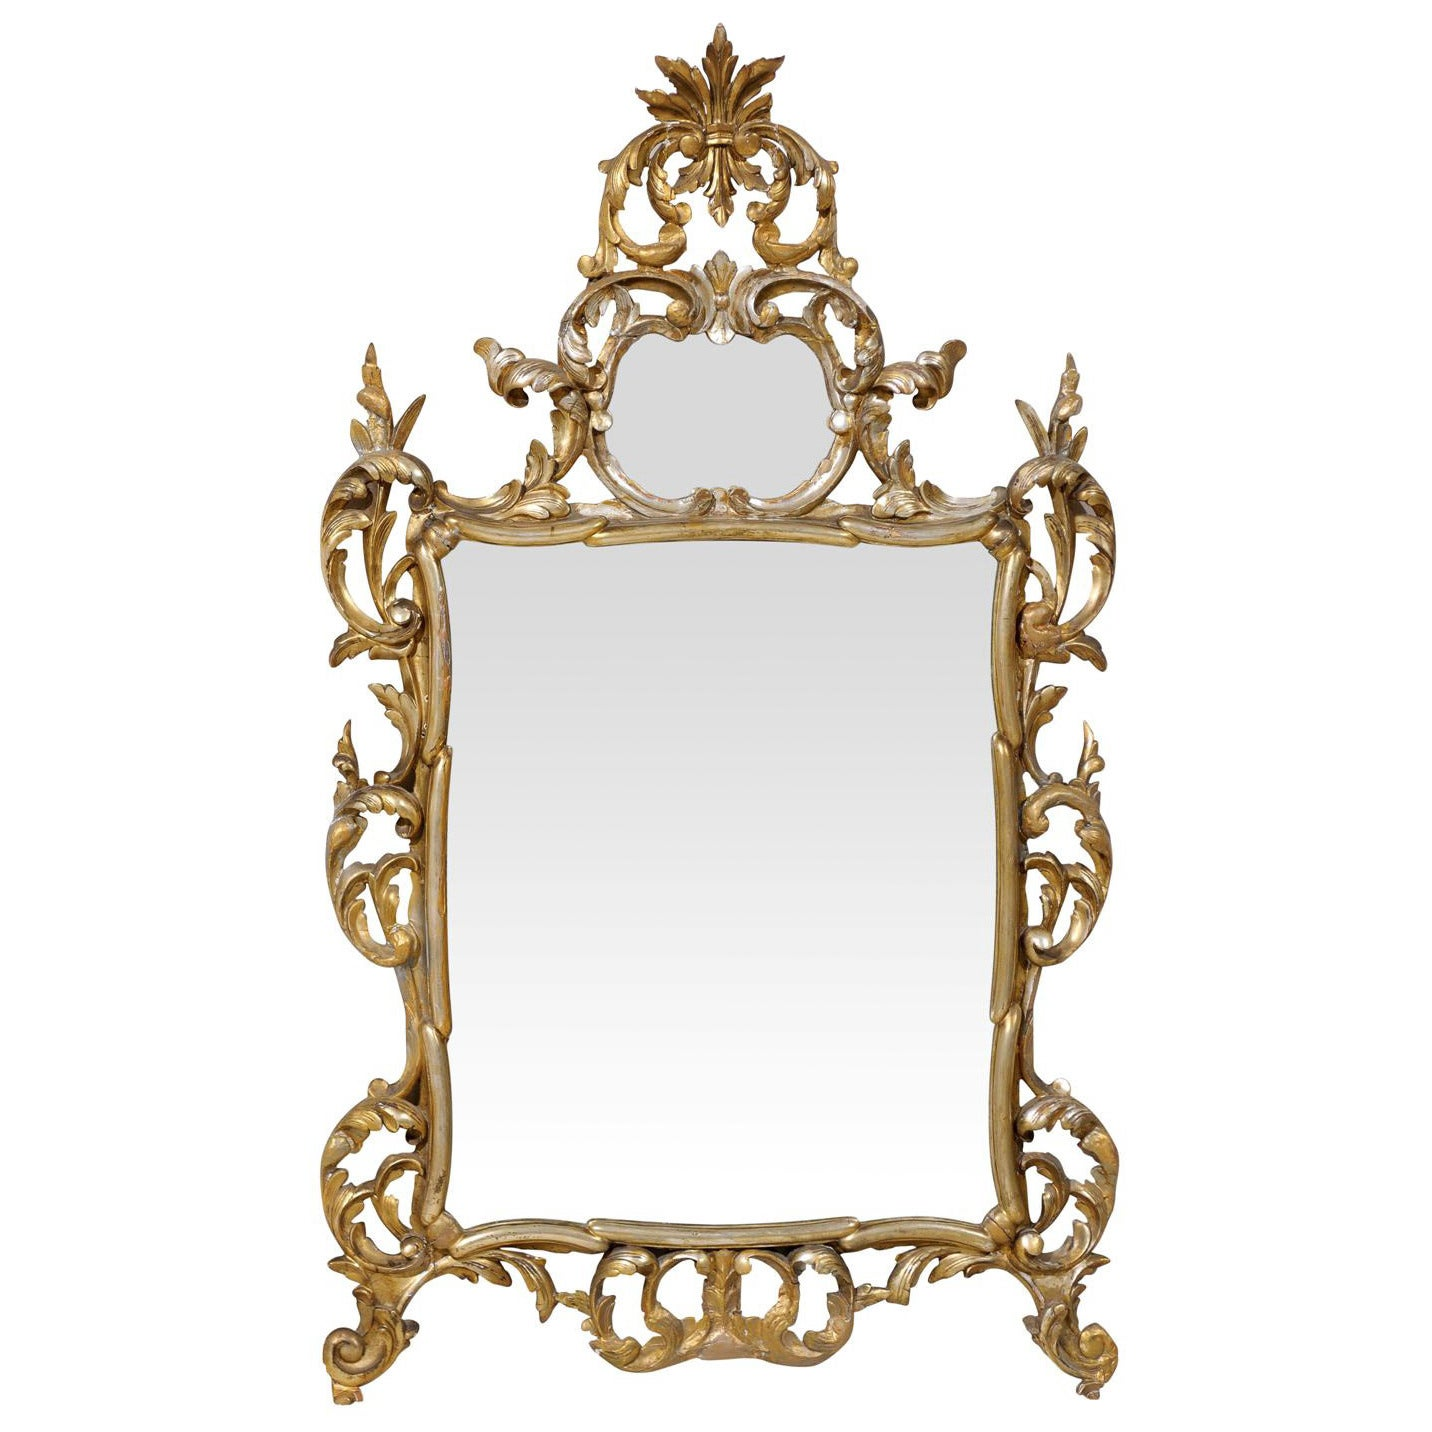 Early 20th Century Italian Gold and Silver Gilt Mirror